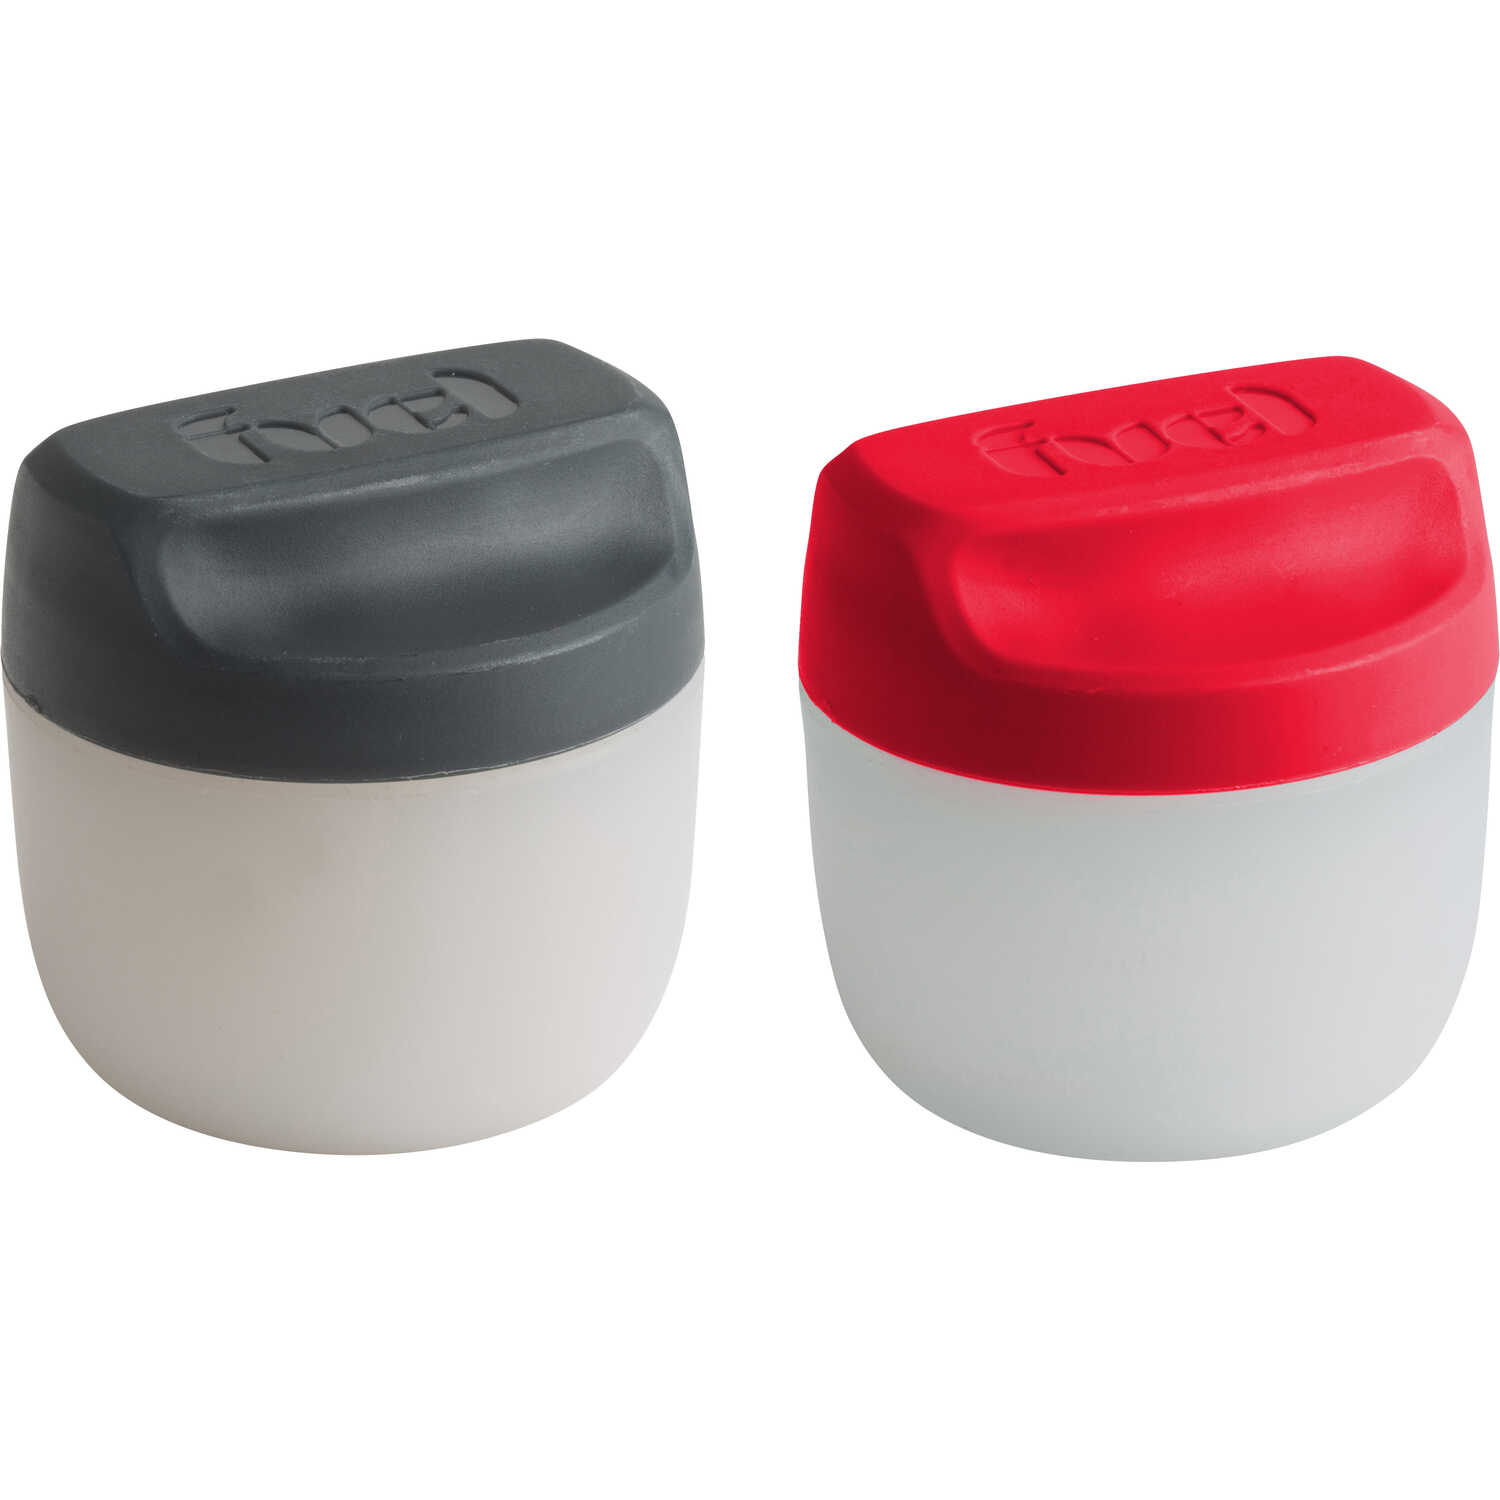 Trudeau  Dressing Container  2 pk 3 oz.